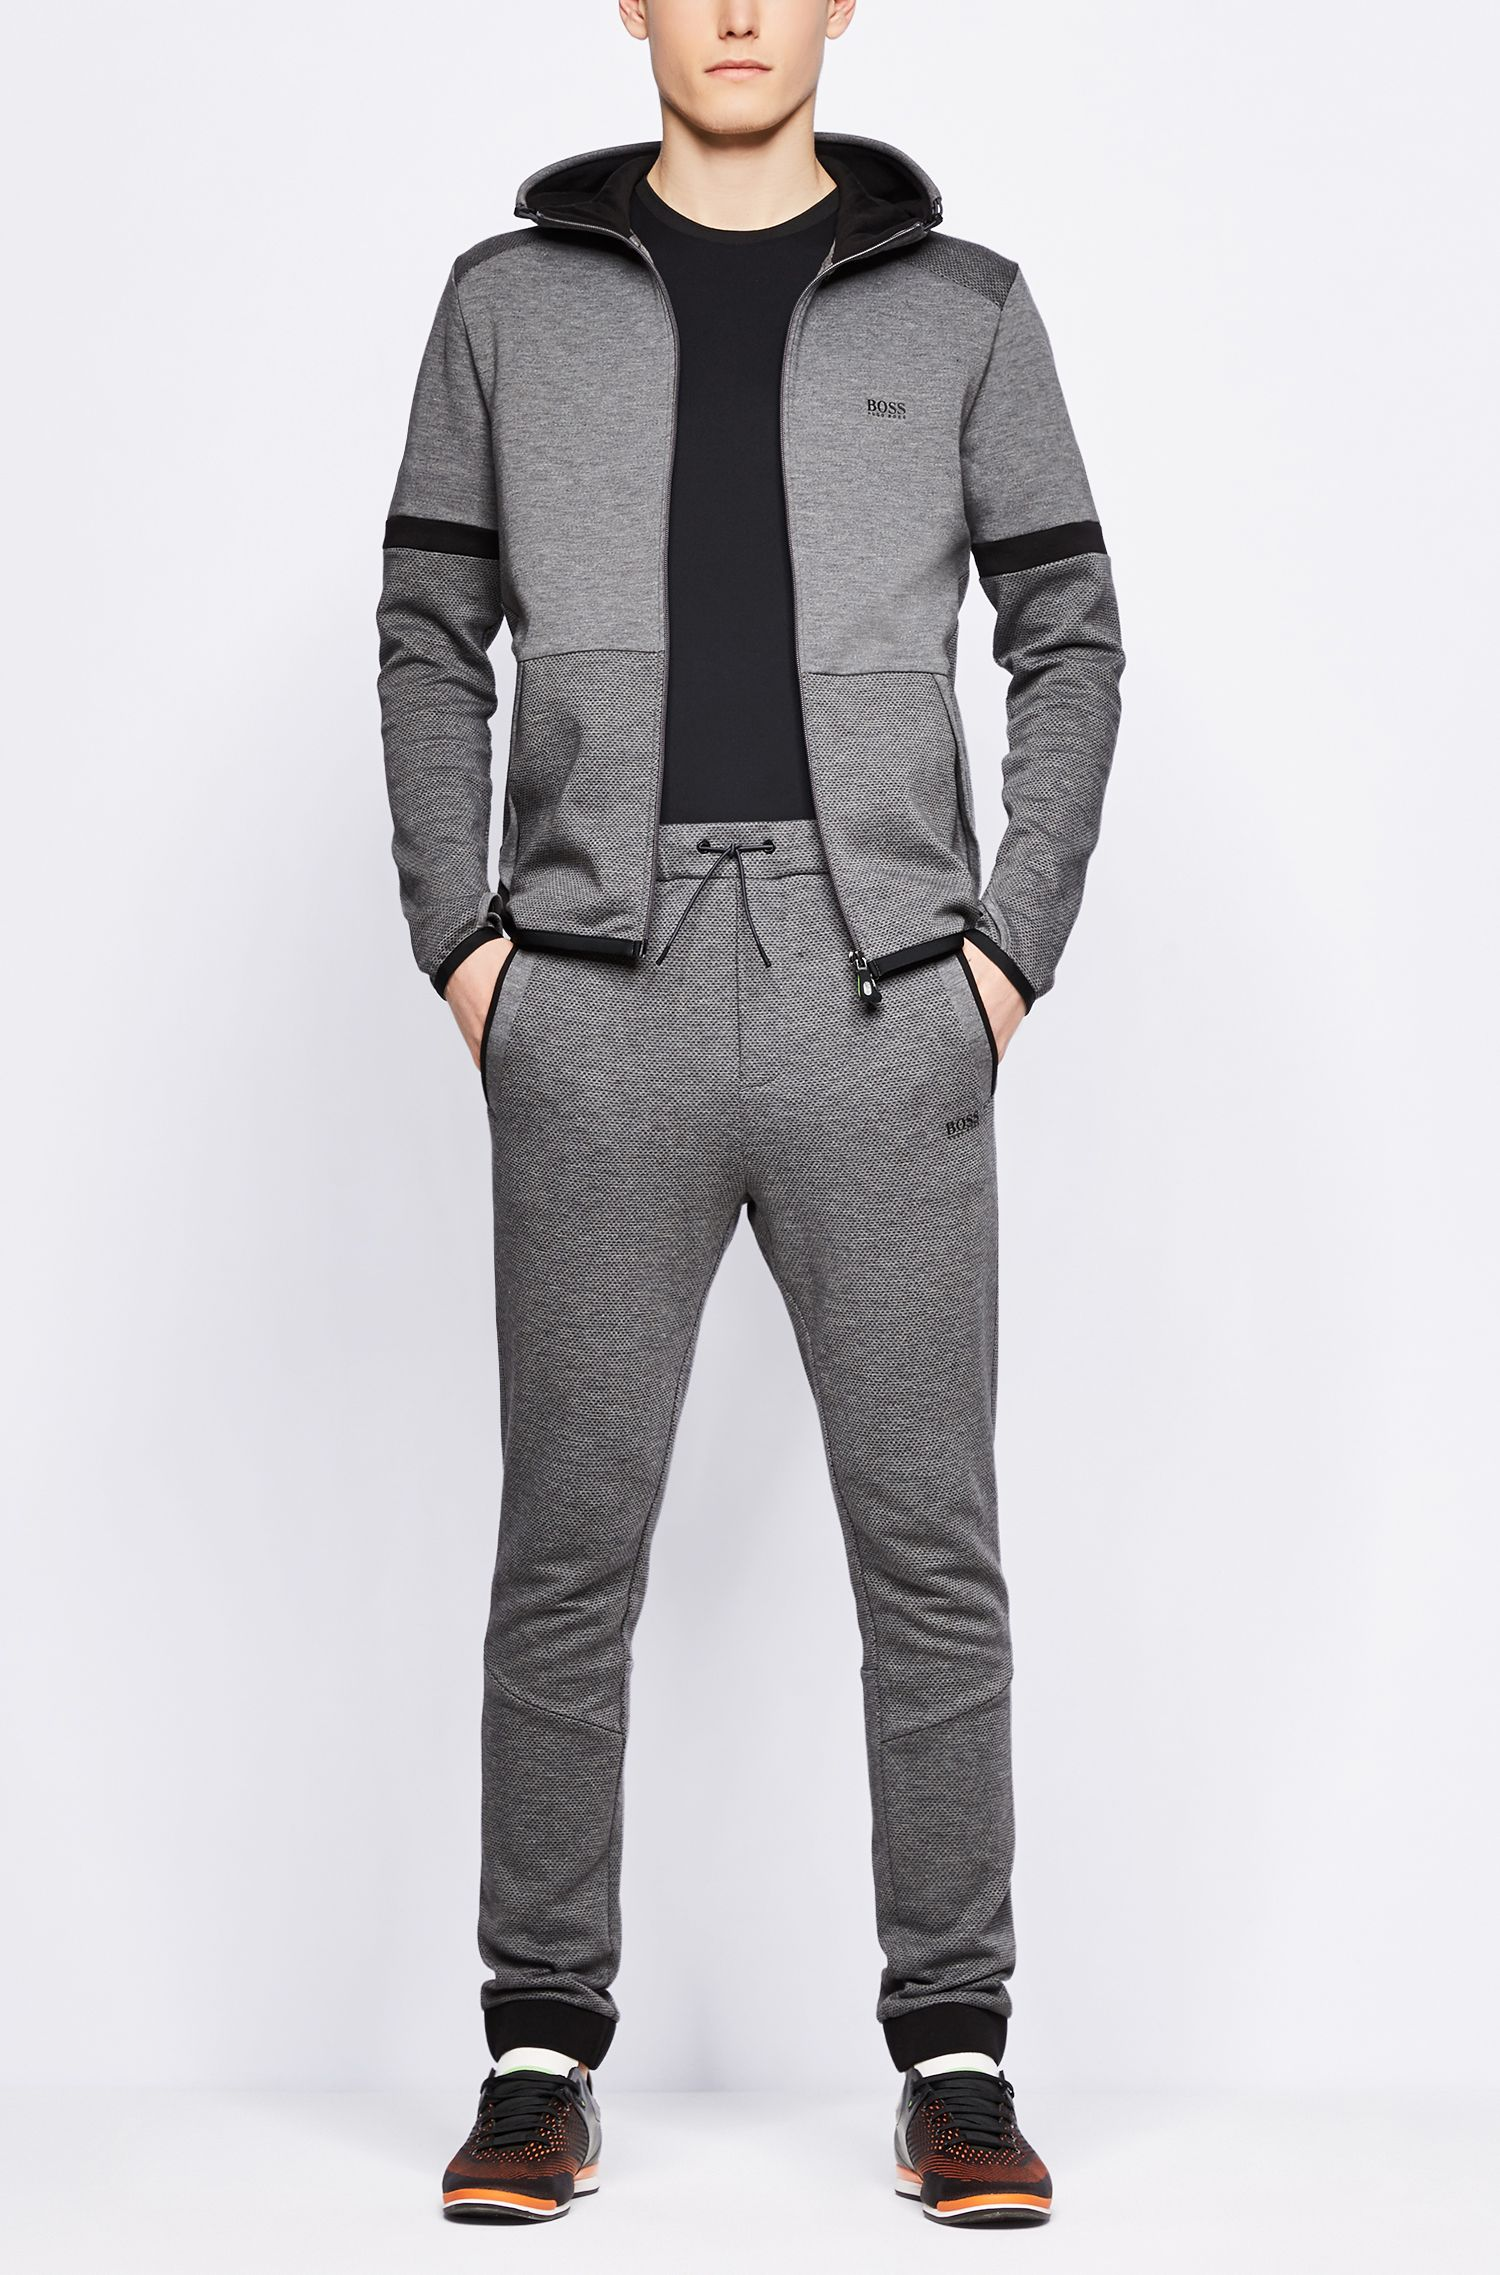 Cuffed jogging bottoms in micro-patterned double-faced jersey